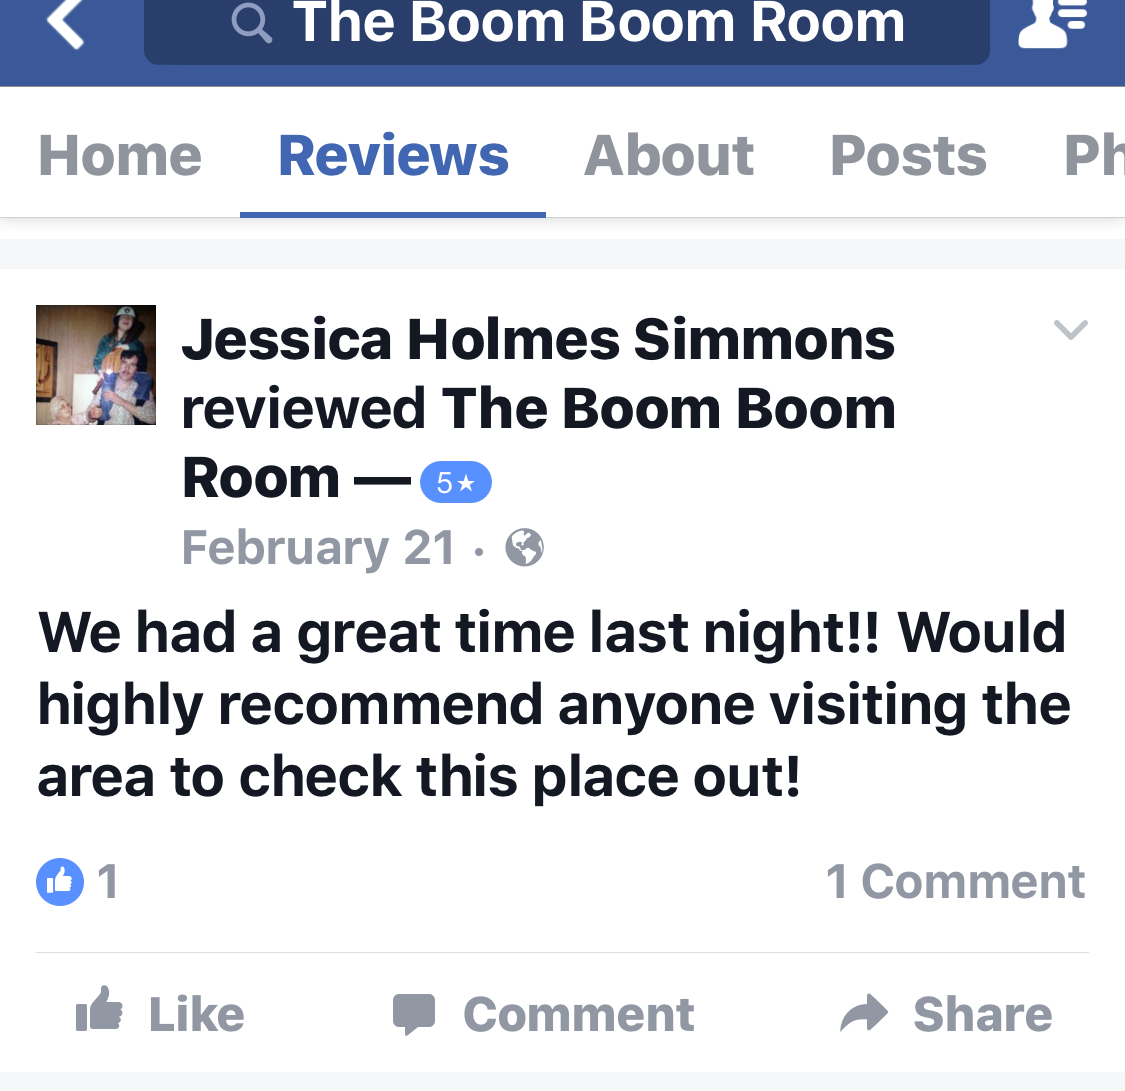 The Boom Boom Room St. Louis Burlesque Positive Reviews -144.png